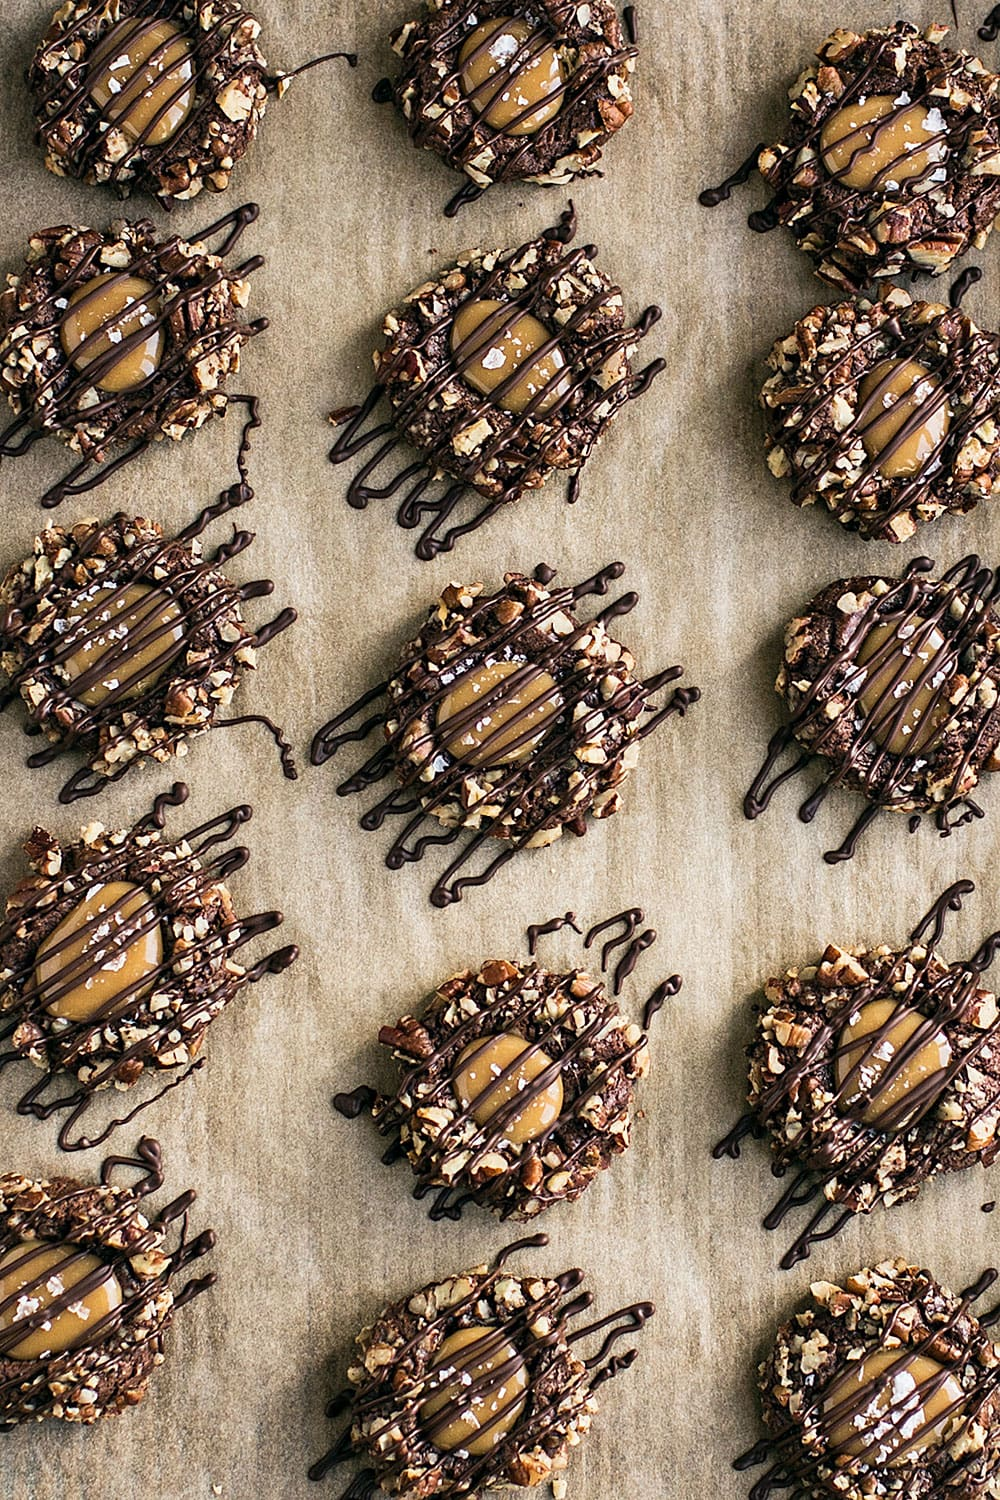 This Turtle Thumbprint Cookie recipe features a cocoa cookie rolled in pecans, filled with a salted caramel thumbprint, and drizzled with chocolate. A perfect Christmas cookie recipe!